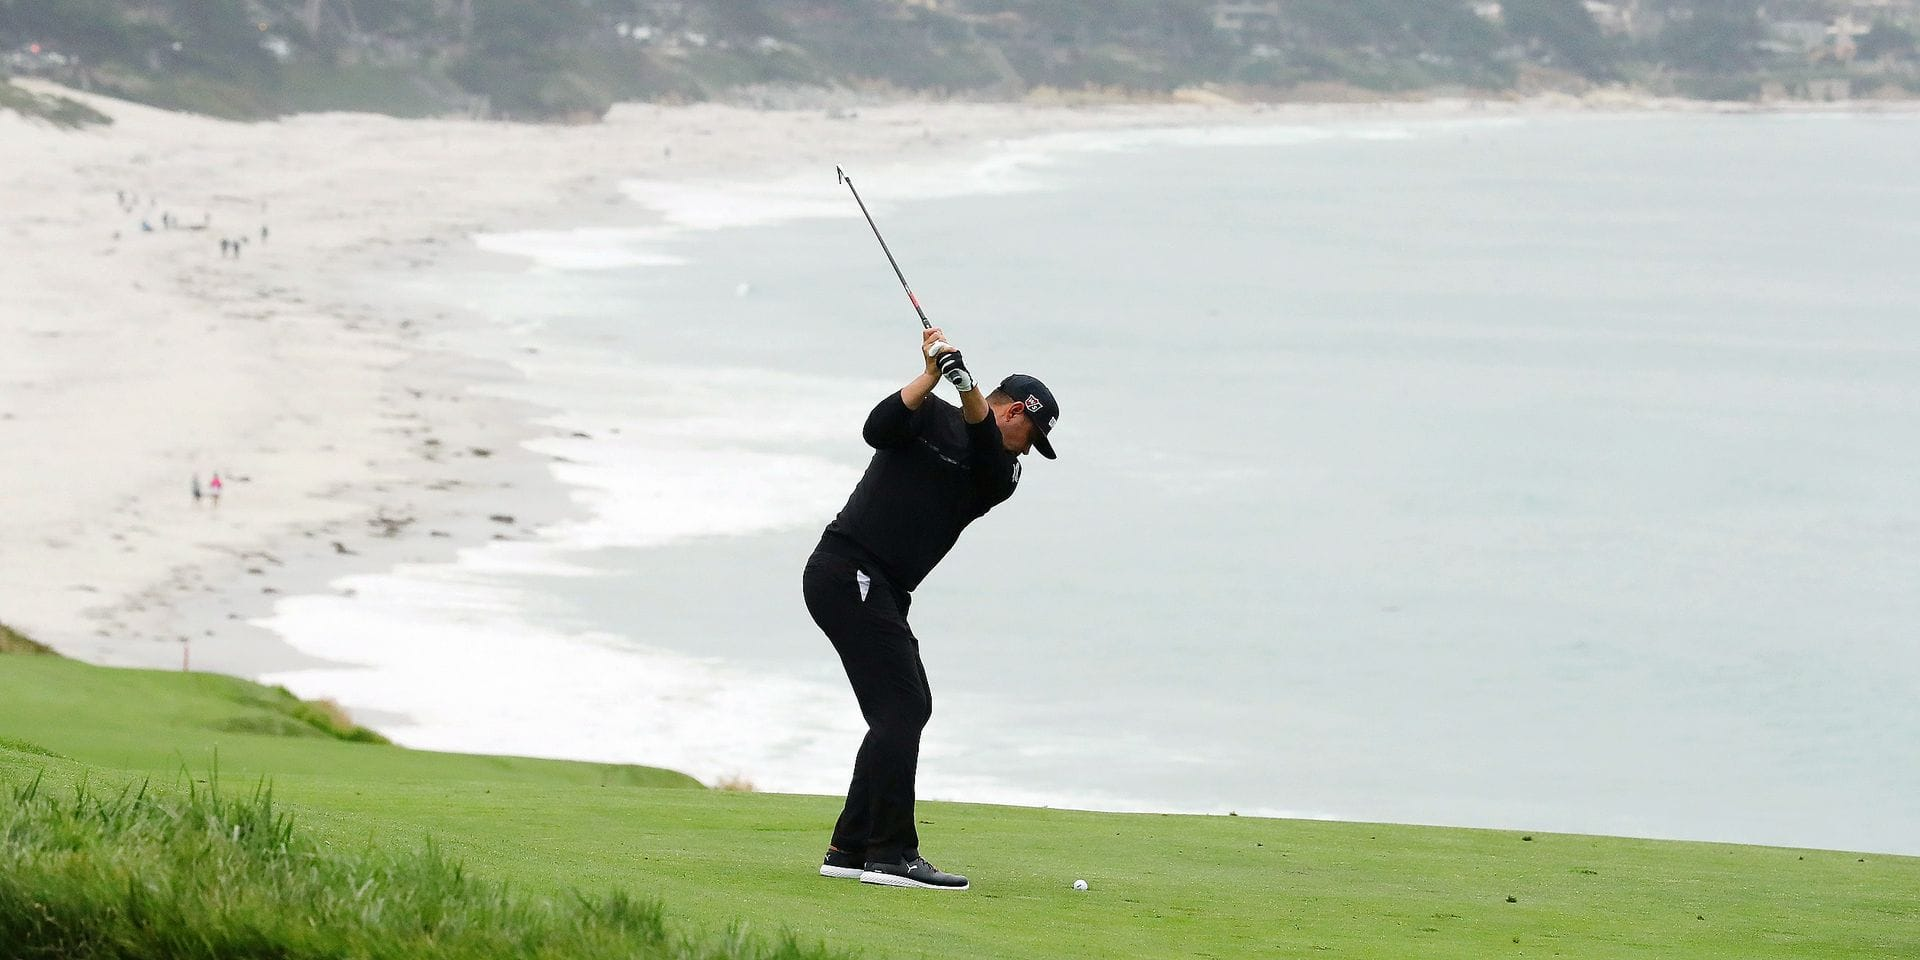 PEBBLE BEACH, CALIFORNIA - JUNE 14: Gary Woodland of the United States plays a second shot on the ninth hole during the second round of the 2019 U.S. Open at Pebble Beach Golf Links on June 14, 2019 in Pebble Beach, California. Warren Little/Getty Images/AFP == FOR NEWSPAPERS, INTERNET, TELCOS & TELEVISION USE ONLY ==